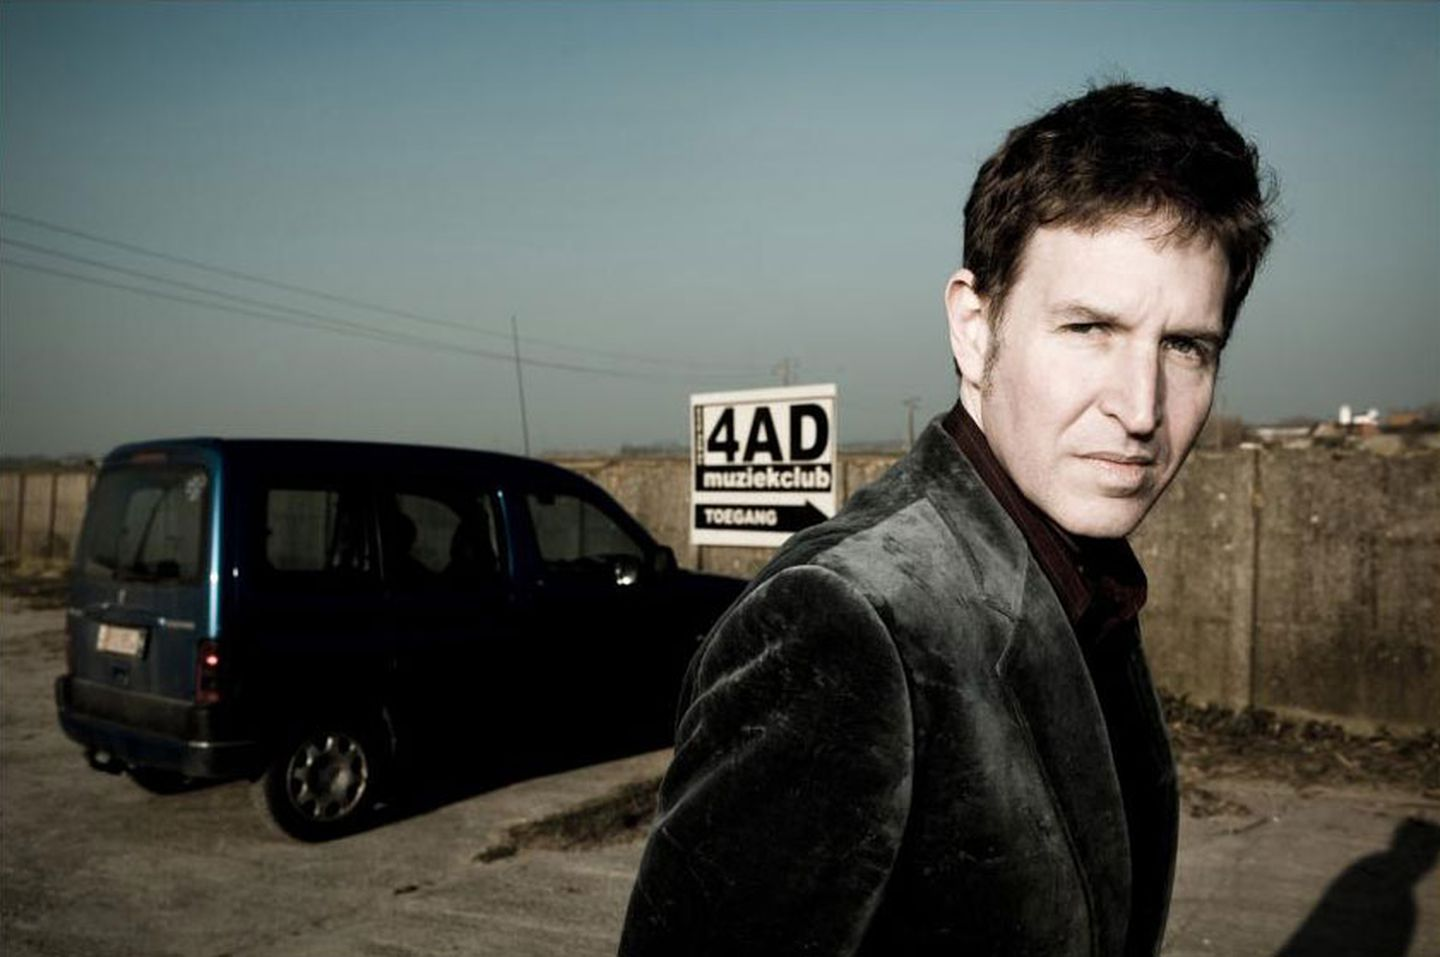 Diffondere il Vangelo della musica. Intervista al grande Steve Wynn, frontman dei Dream Syndicate: da Billboard all'Impossible Tour